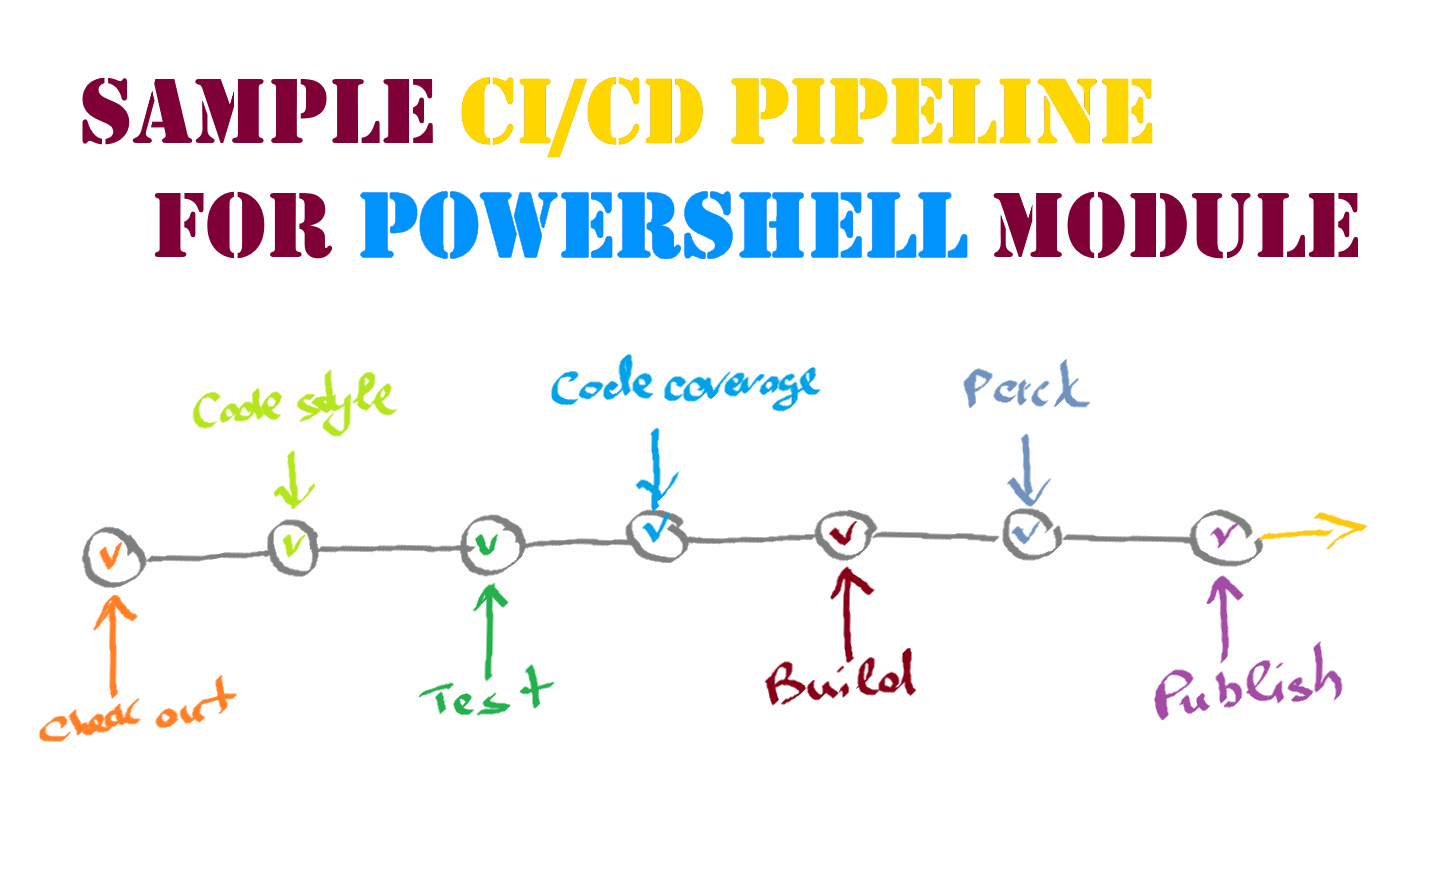 A sample CI/CD pipeline for PowerShell module